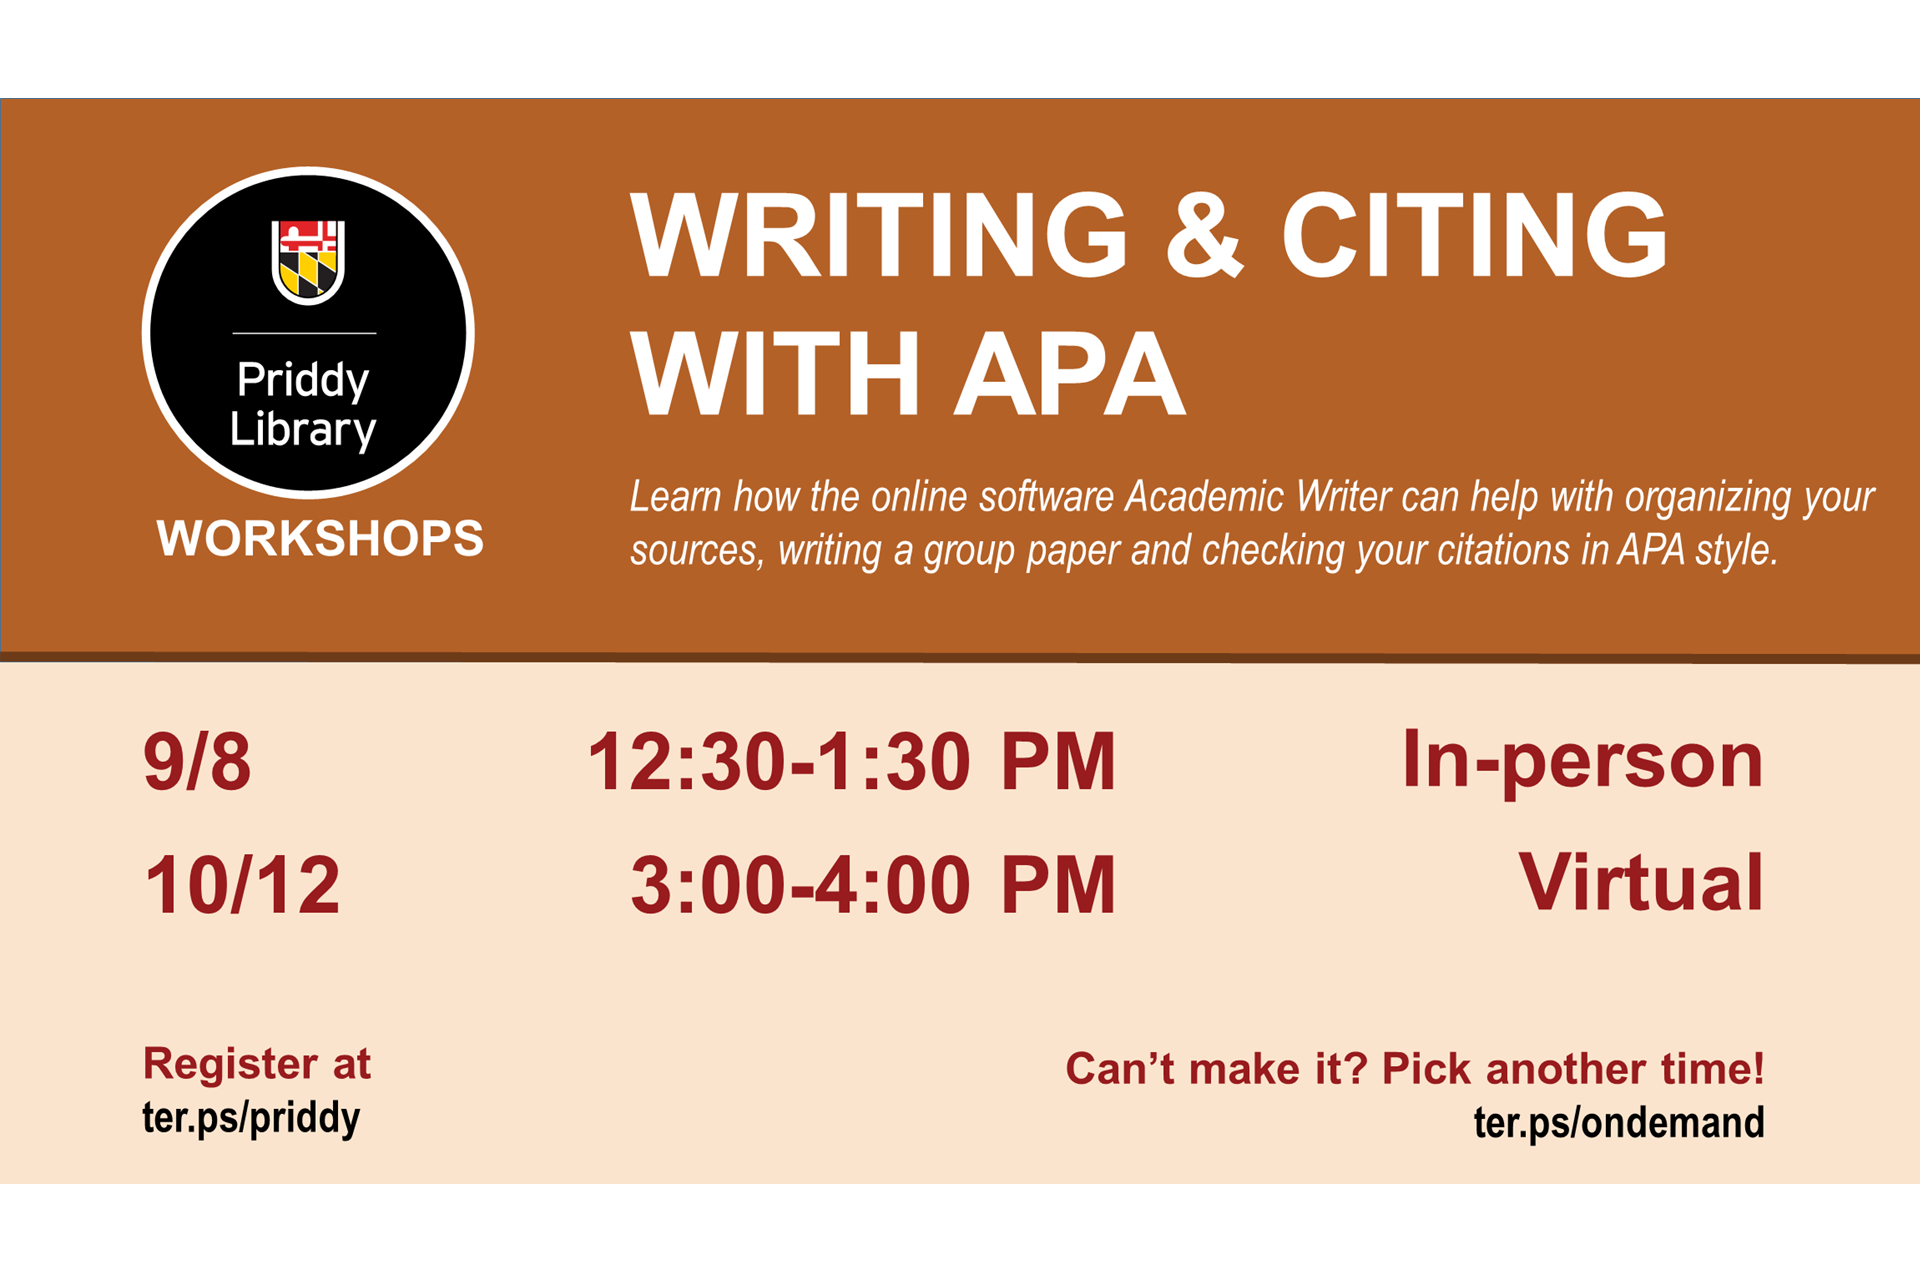 Writing and Citing with APA workshop flyer